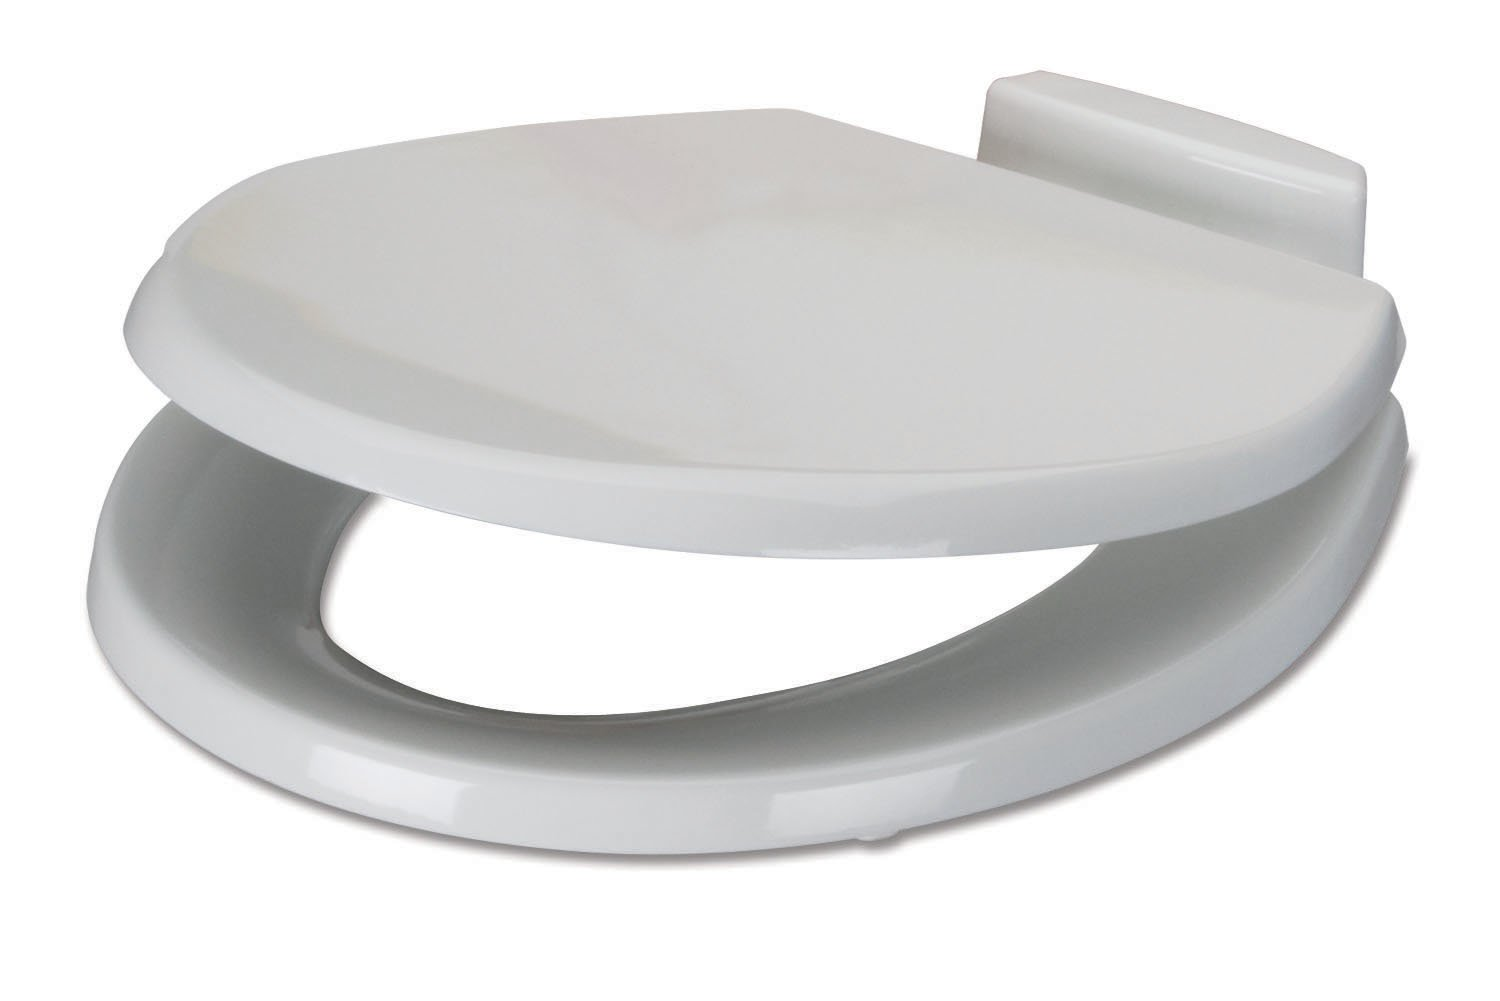 Brilliant Dometic 385311939 Toilet Seat White By Dometic Amazon Co Short Links Chair Design For Home Short Linksinfo